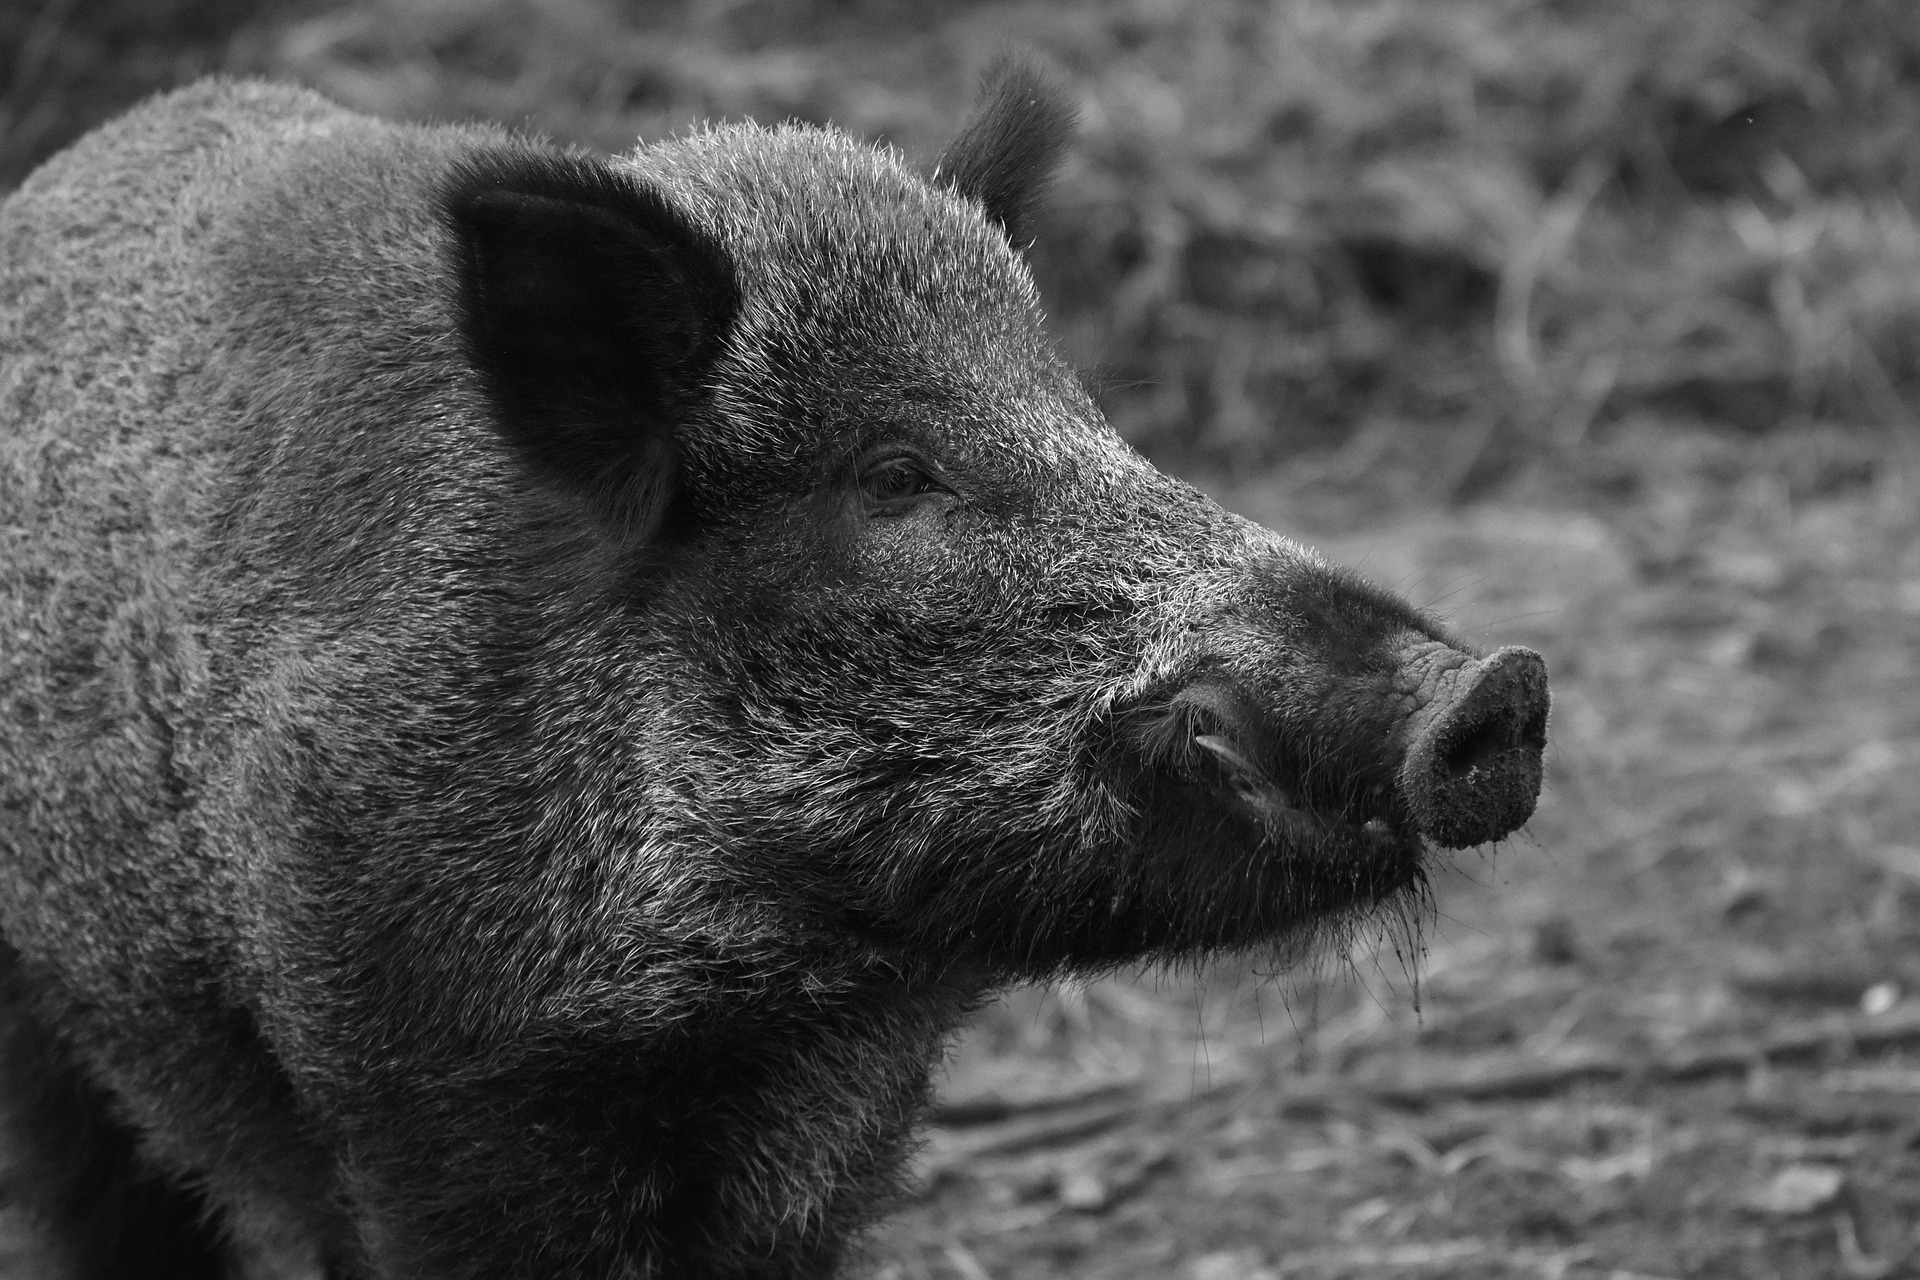 More Confirmed ASF Cases In Wild Boar In Germany: Compensation Will Be Paid For Finding Dead Animals